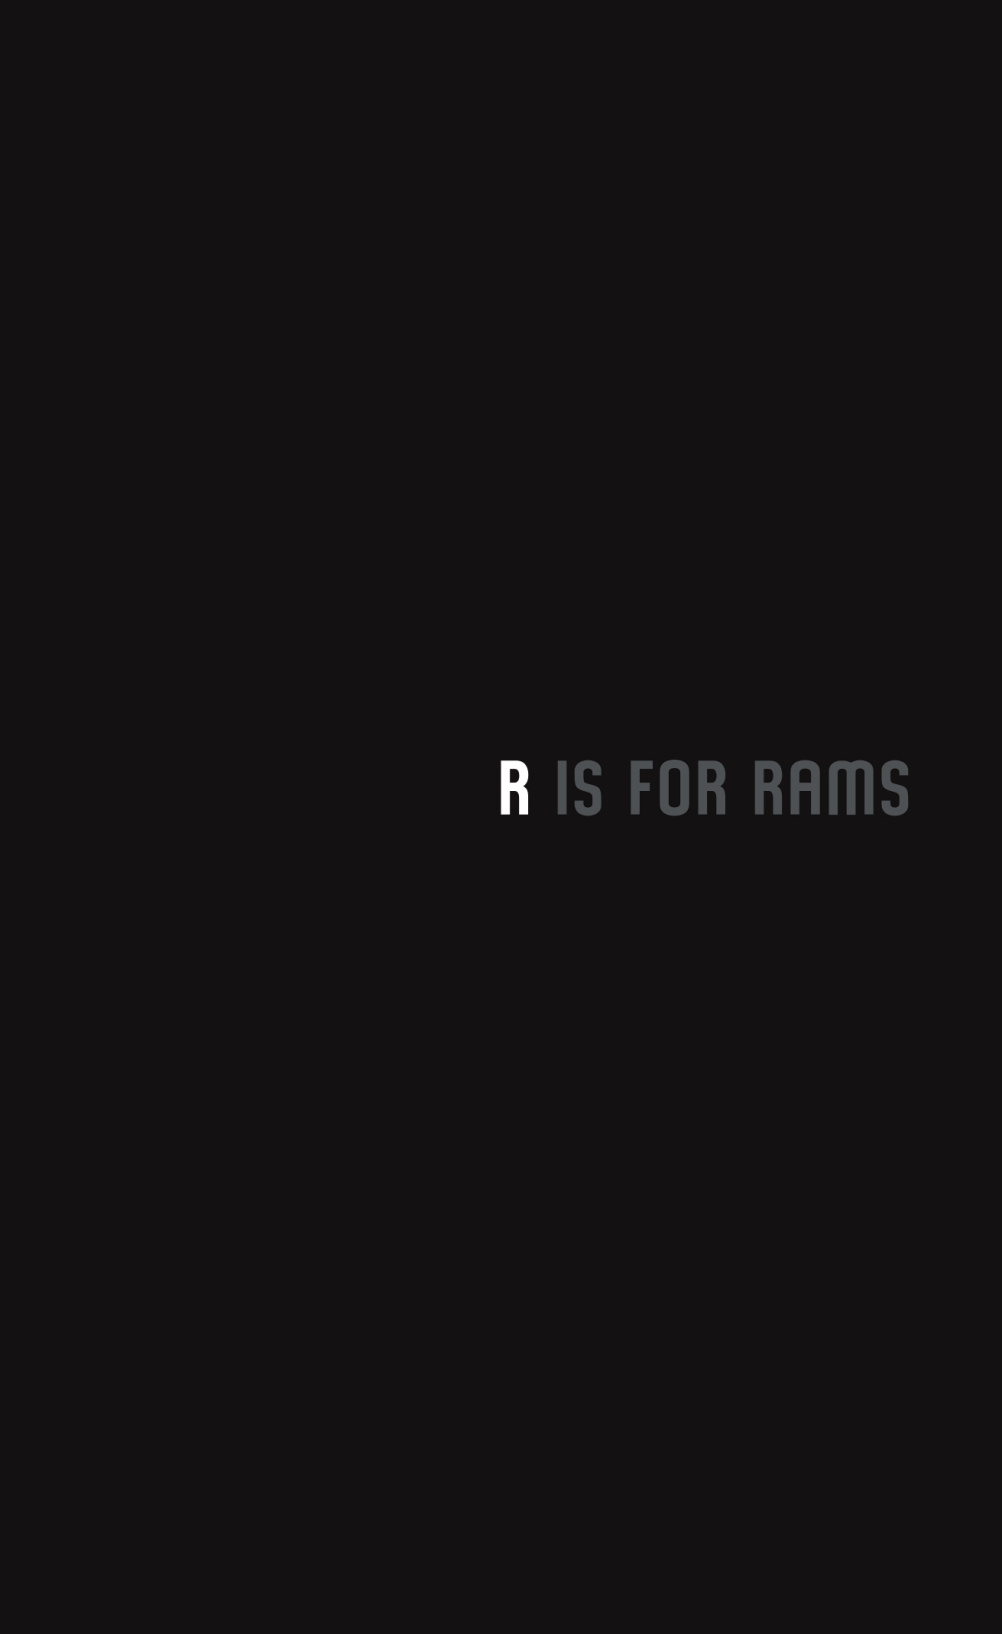 R is for Rams